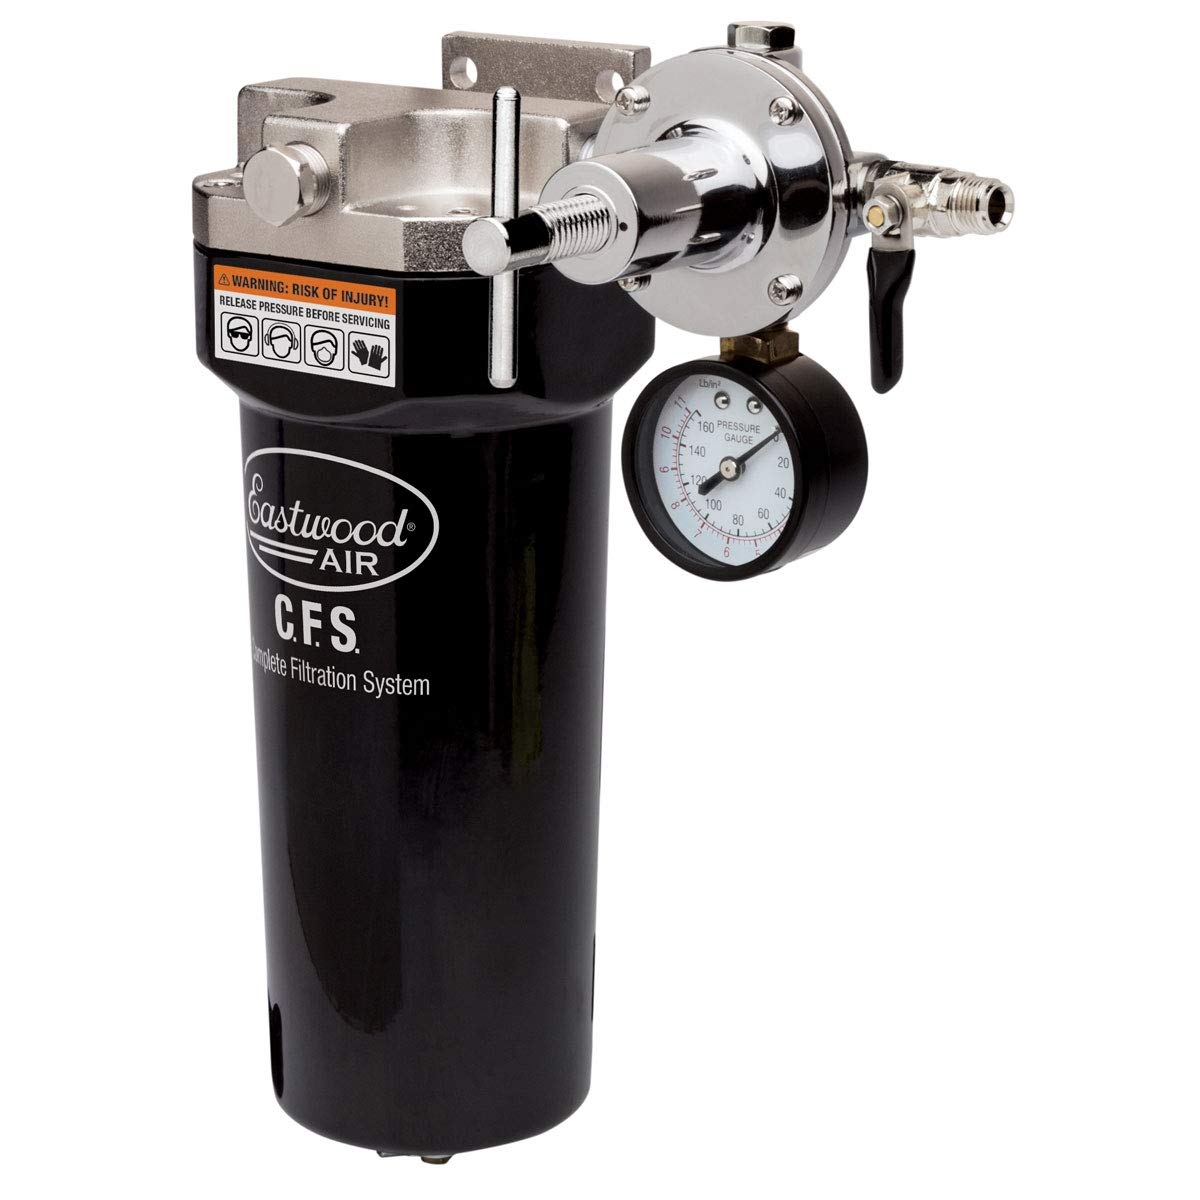 Eastwood Eastwood Air Complete Filtration System 150 Psi Max Pressure by Eastwood